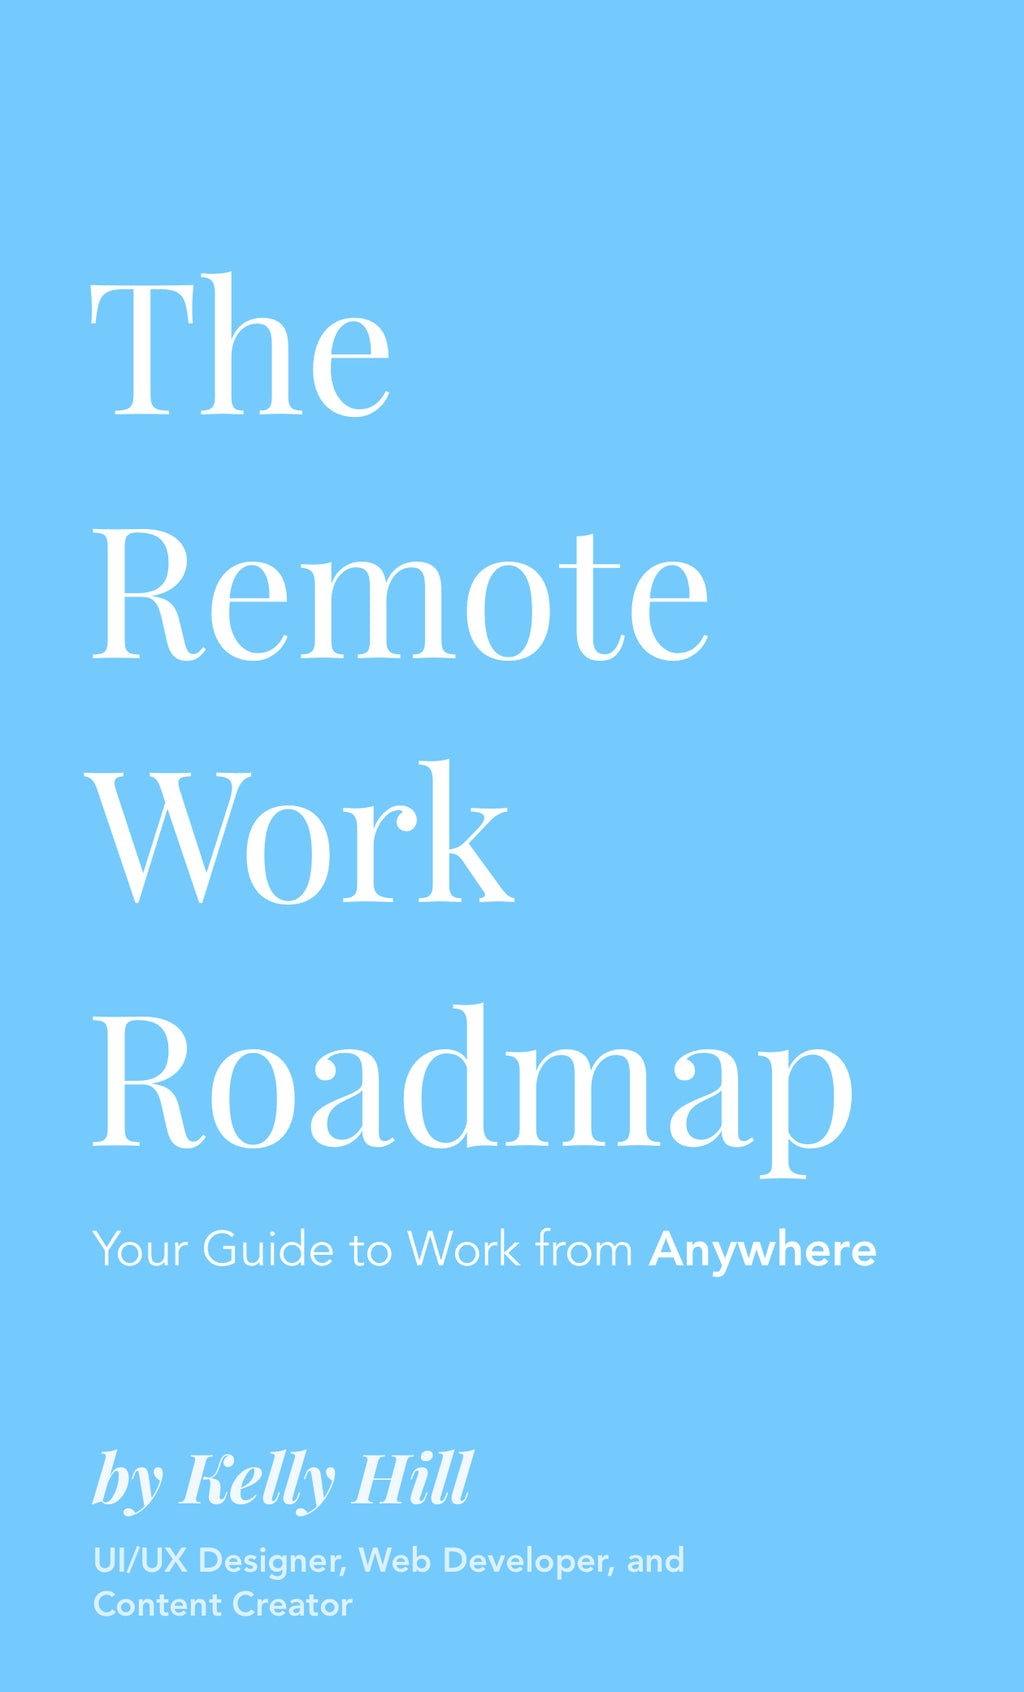 The Remote Work Roadmap: Your Guide to Work from Anywhere